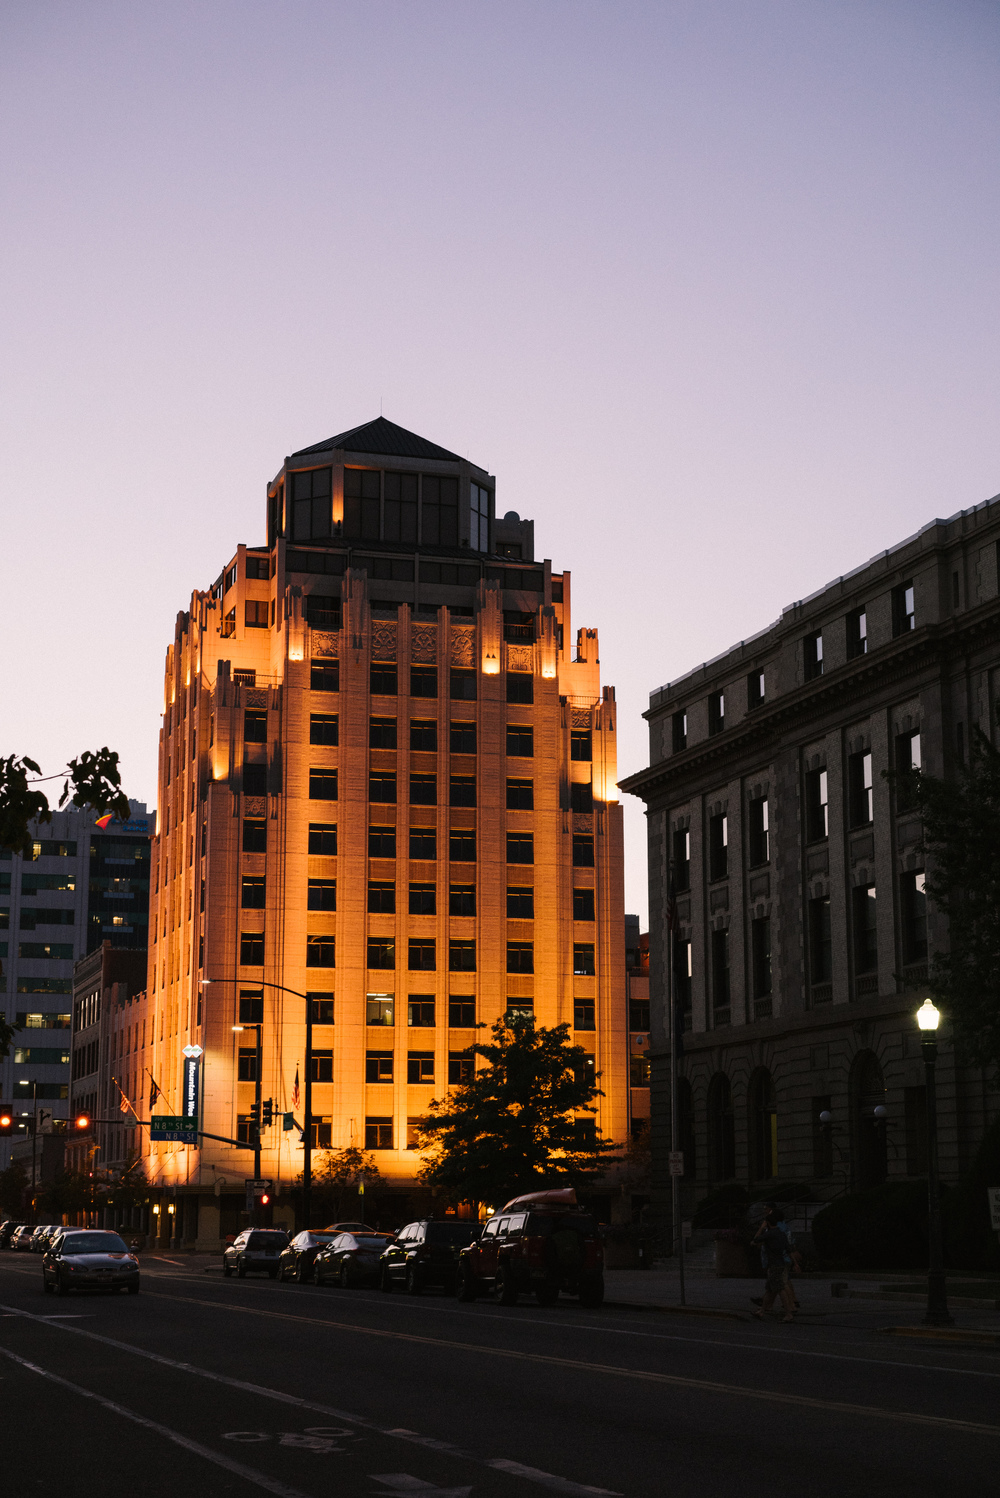 Many of the buildings are beautifully illuminated when the sun goes down.